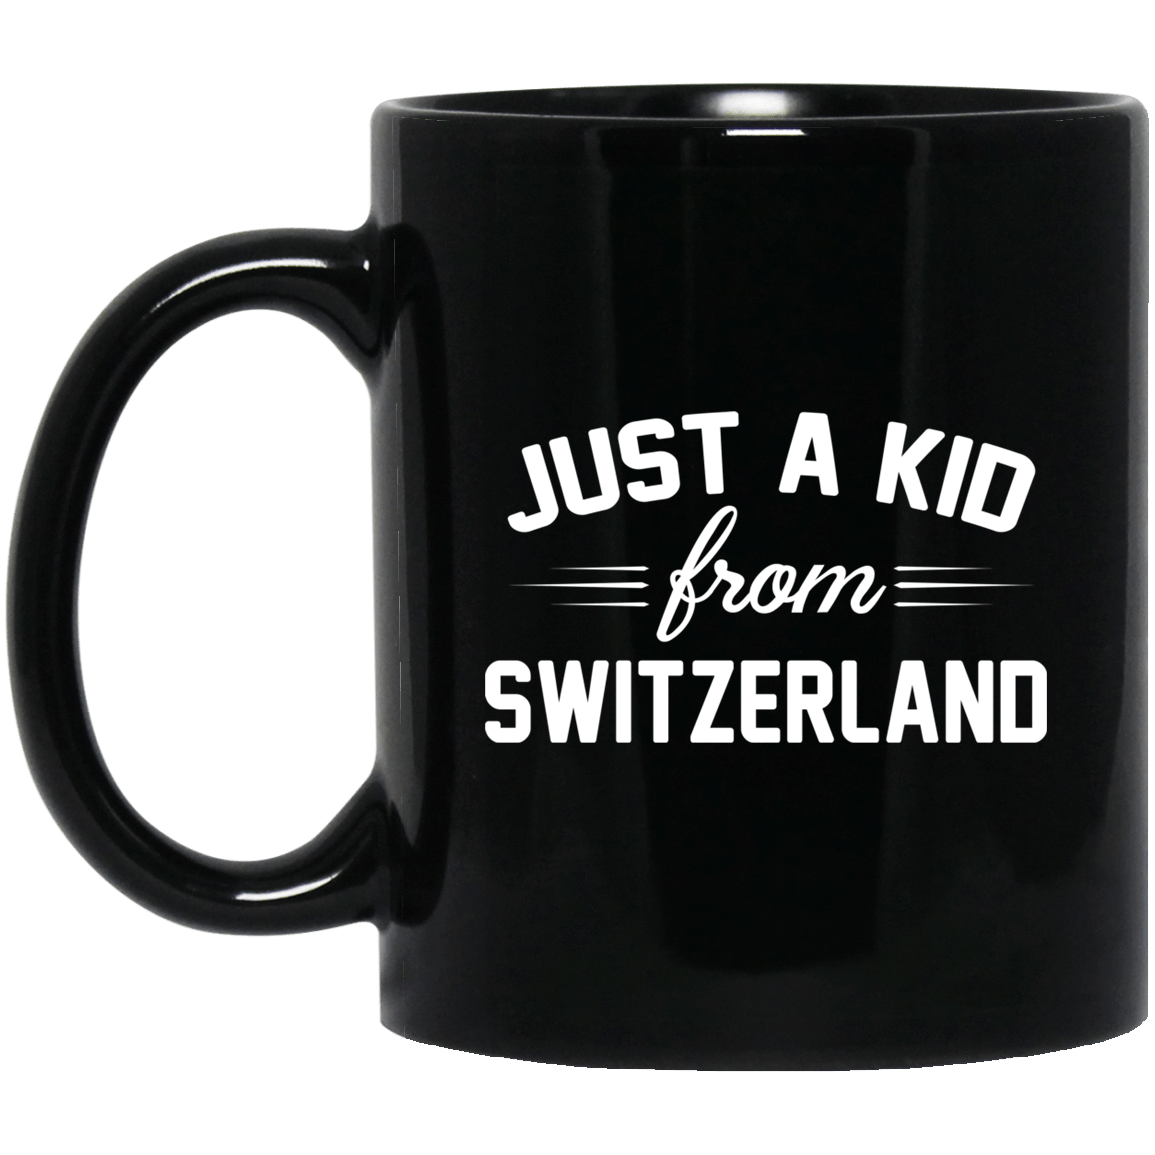 Just A Kid Store | Switzerland Mug 1065-10181-72111101-49307 - Tee Ript